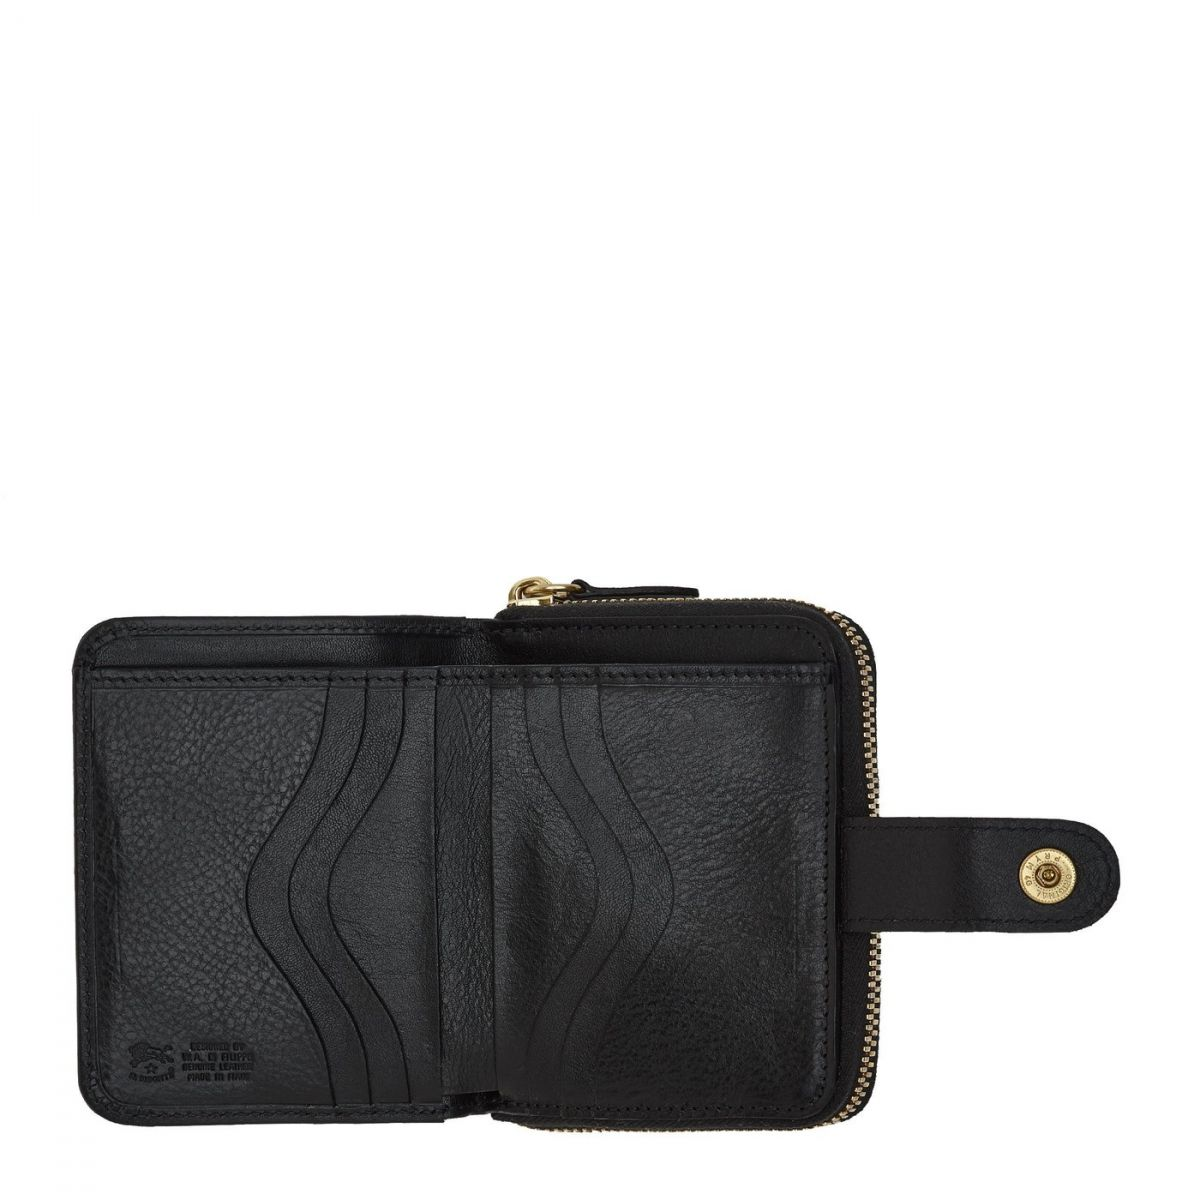 Women's Wallet  in Cowhide Double Leather SMW067 color Black | Details